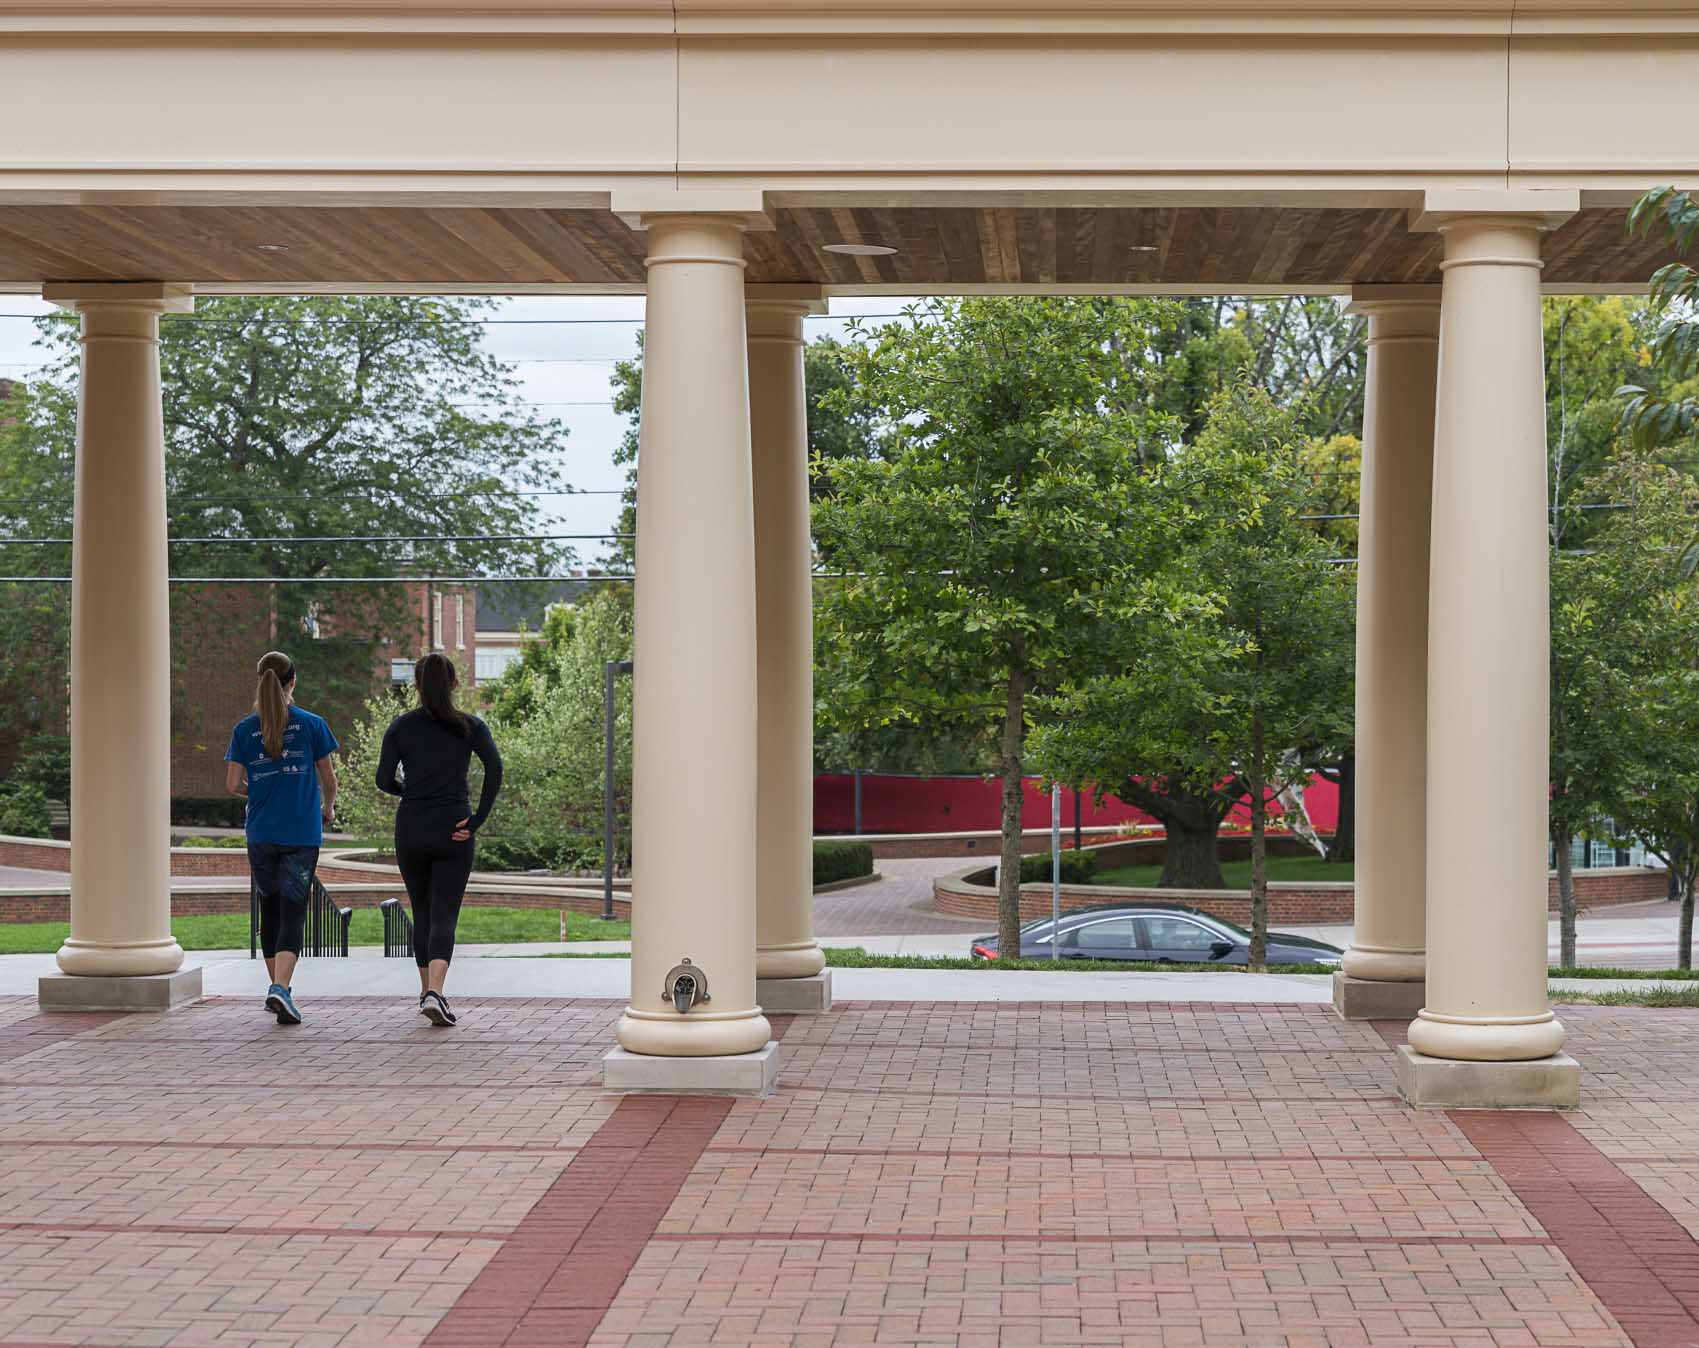 Two students walking under awning at Miami University